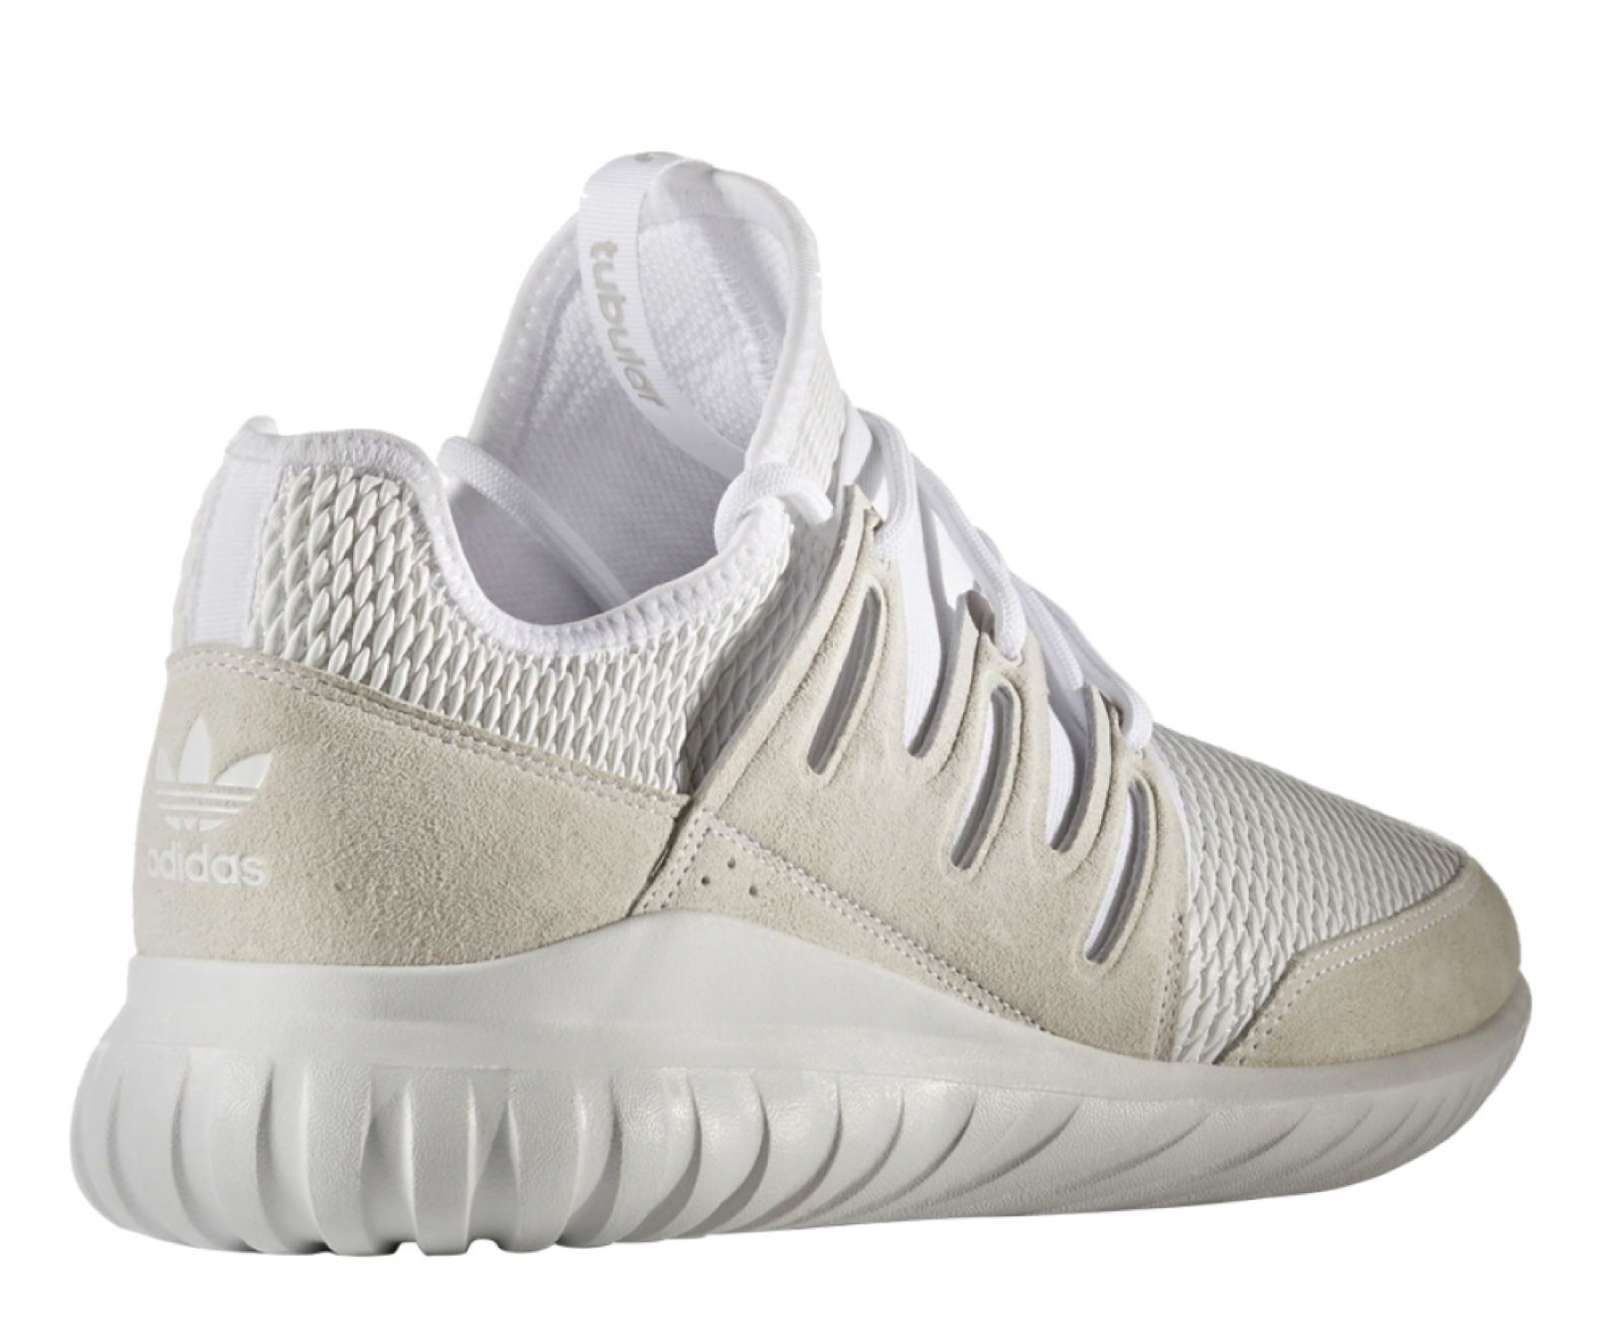 Adidas Uomo light Tubular Radial (white / footwear white / light Uomo solid grey) f0d31e